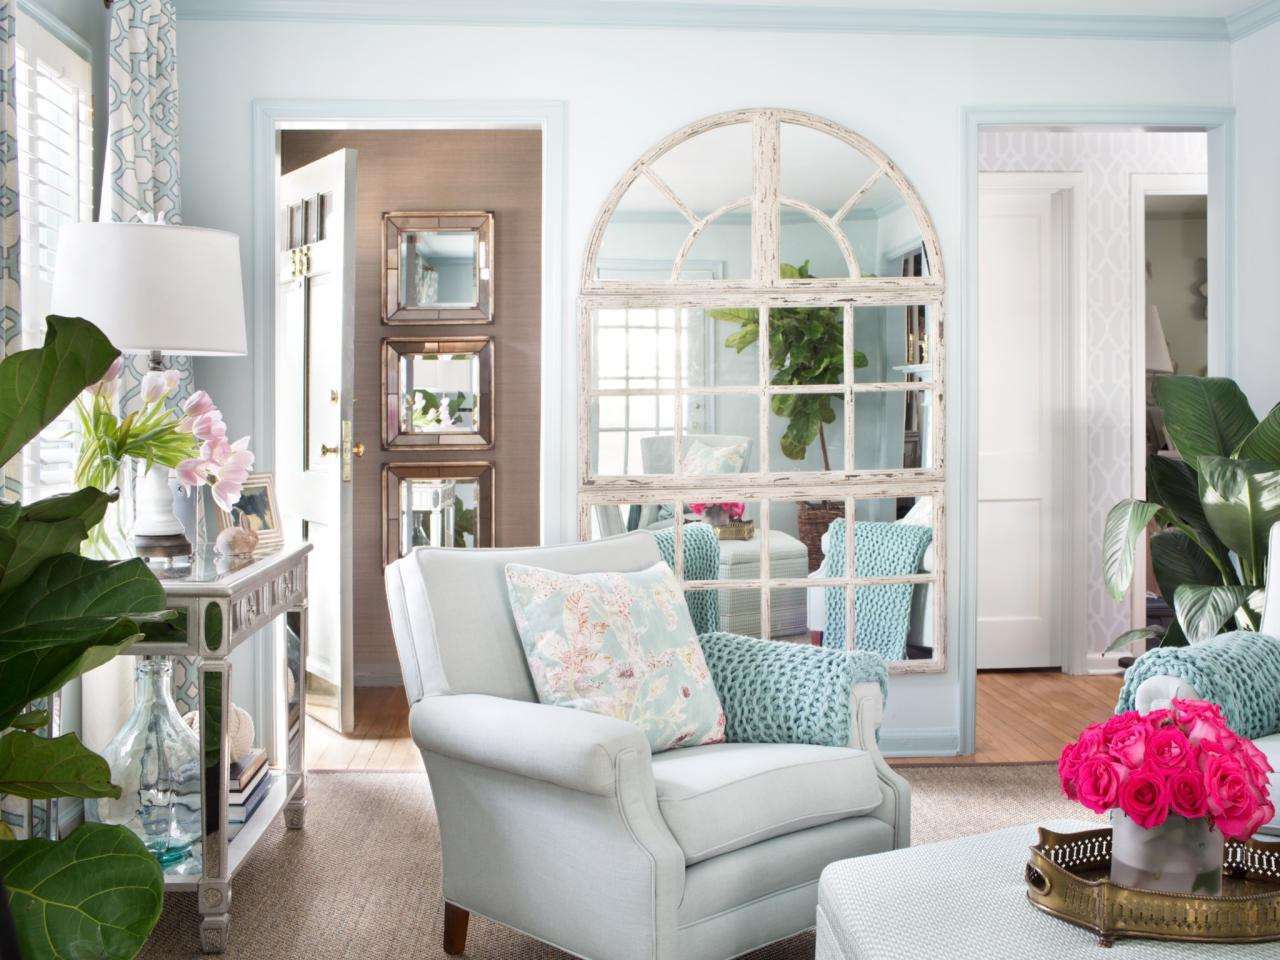 15 of Jillian Harris Most Stylish Outfits HGTVs Decorating Design Blog HGTV - 25 Best Traditional Living Room Designs